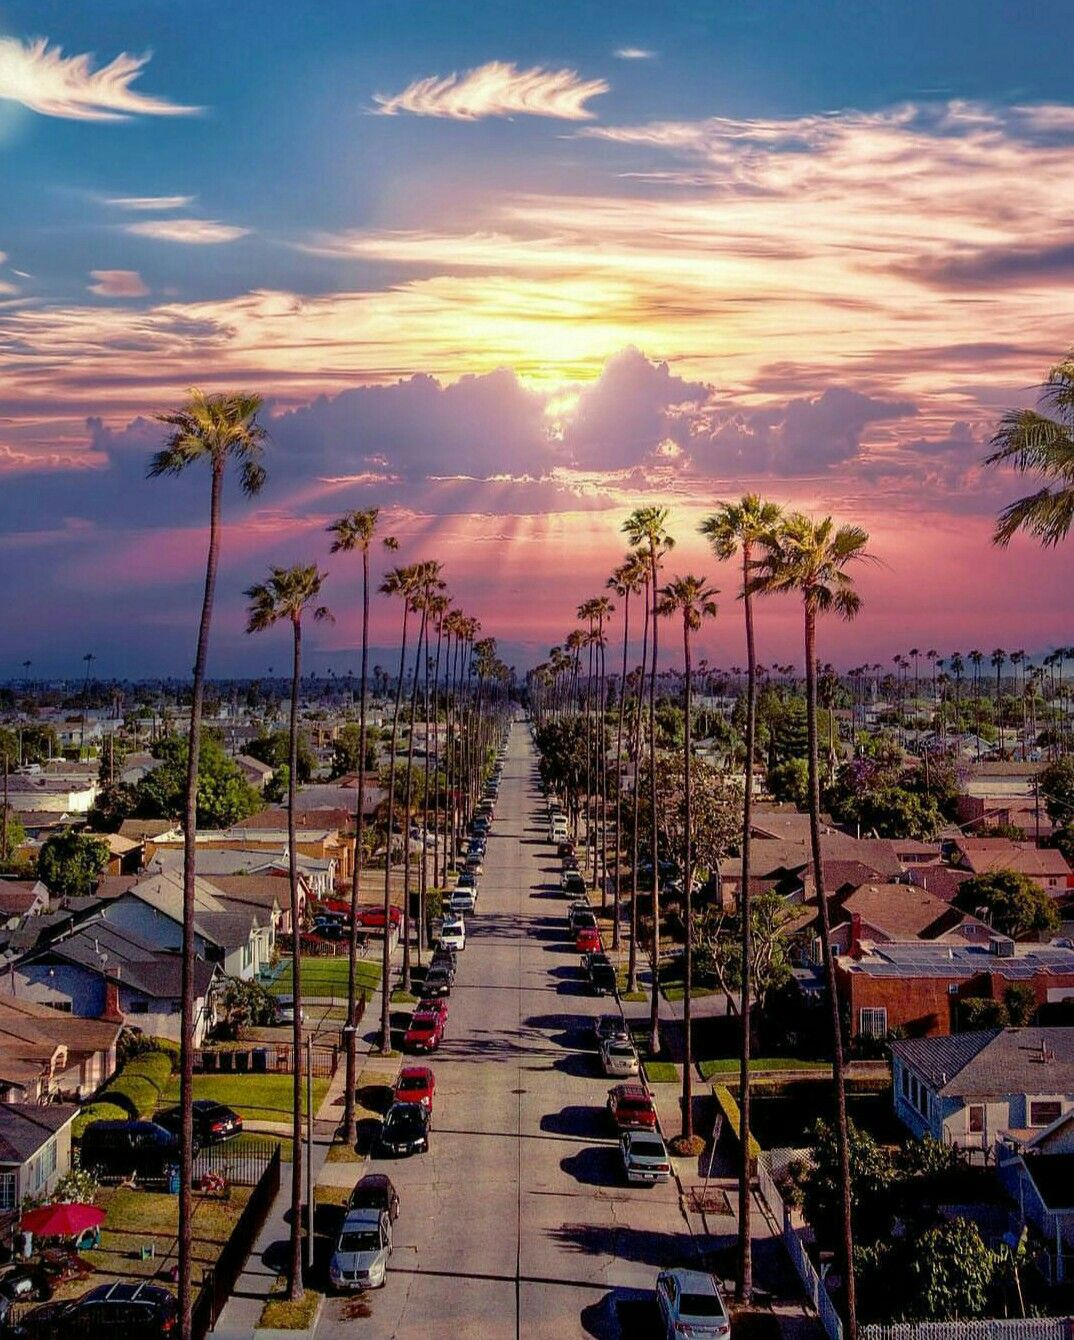 Pin By Yener On Resim Picture 1 Road Trip Usa Trip Los Angeles Skyline